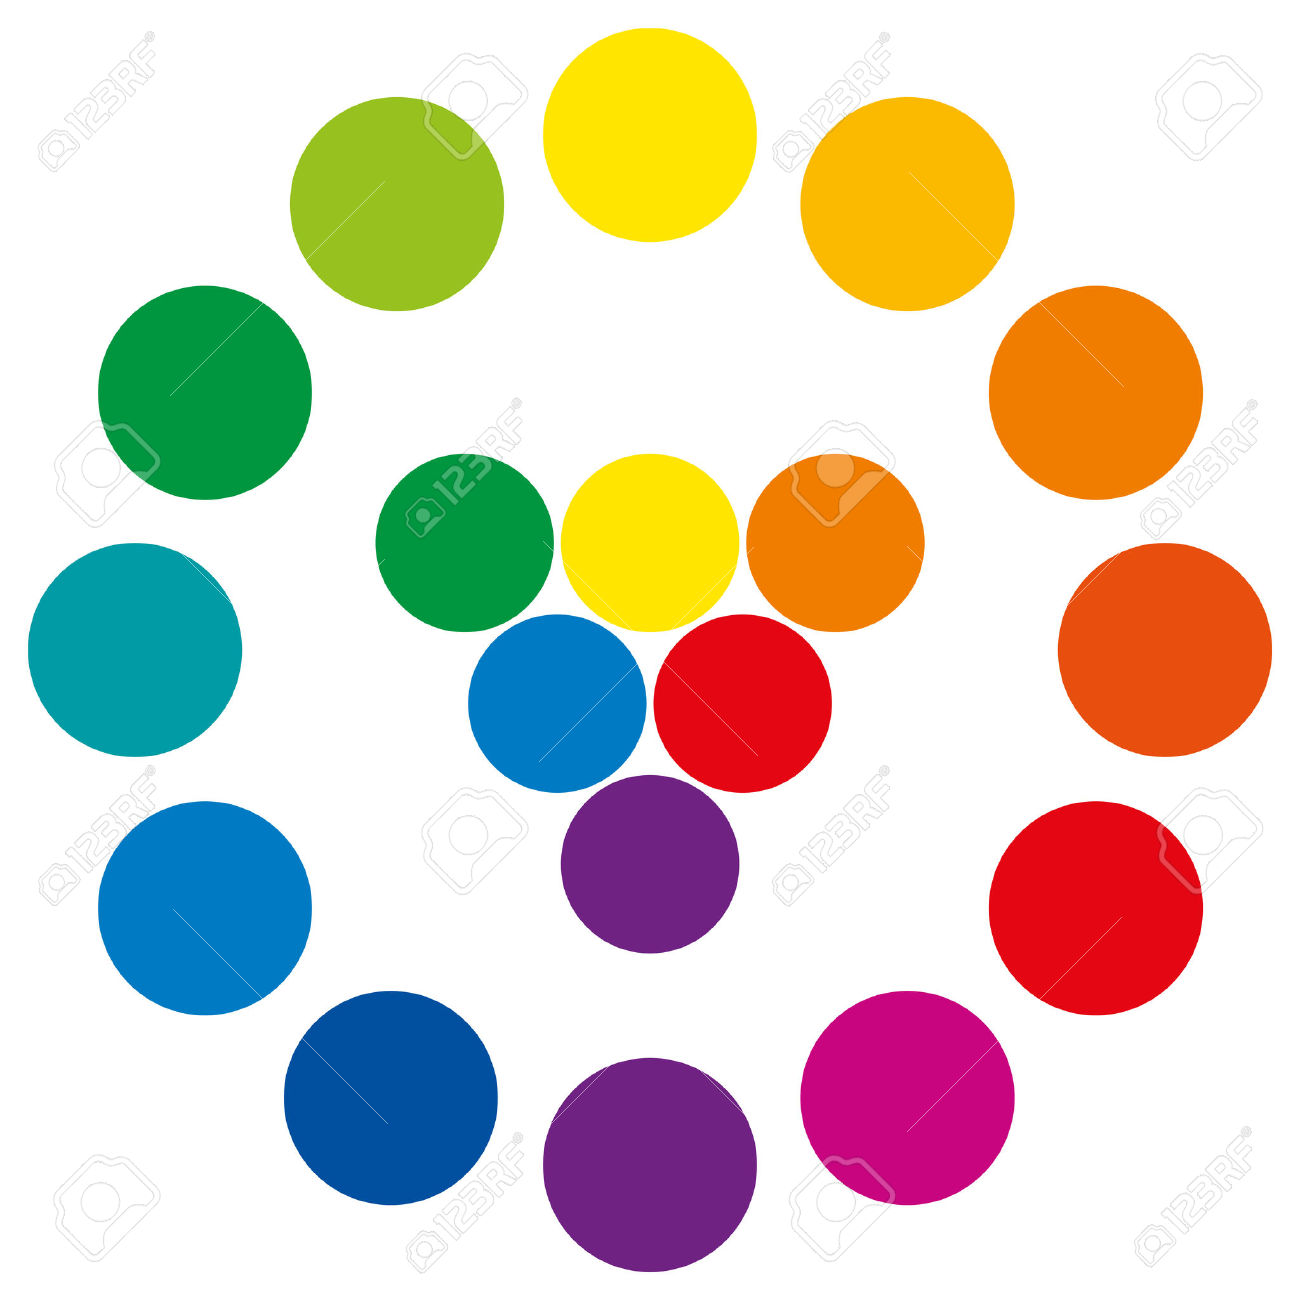 Color Wheel With Circles, Showing The Complementary Colors That.